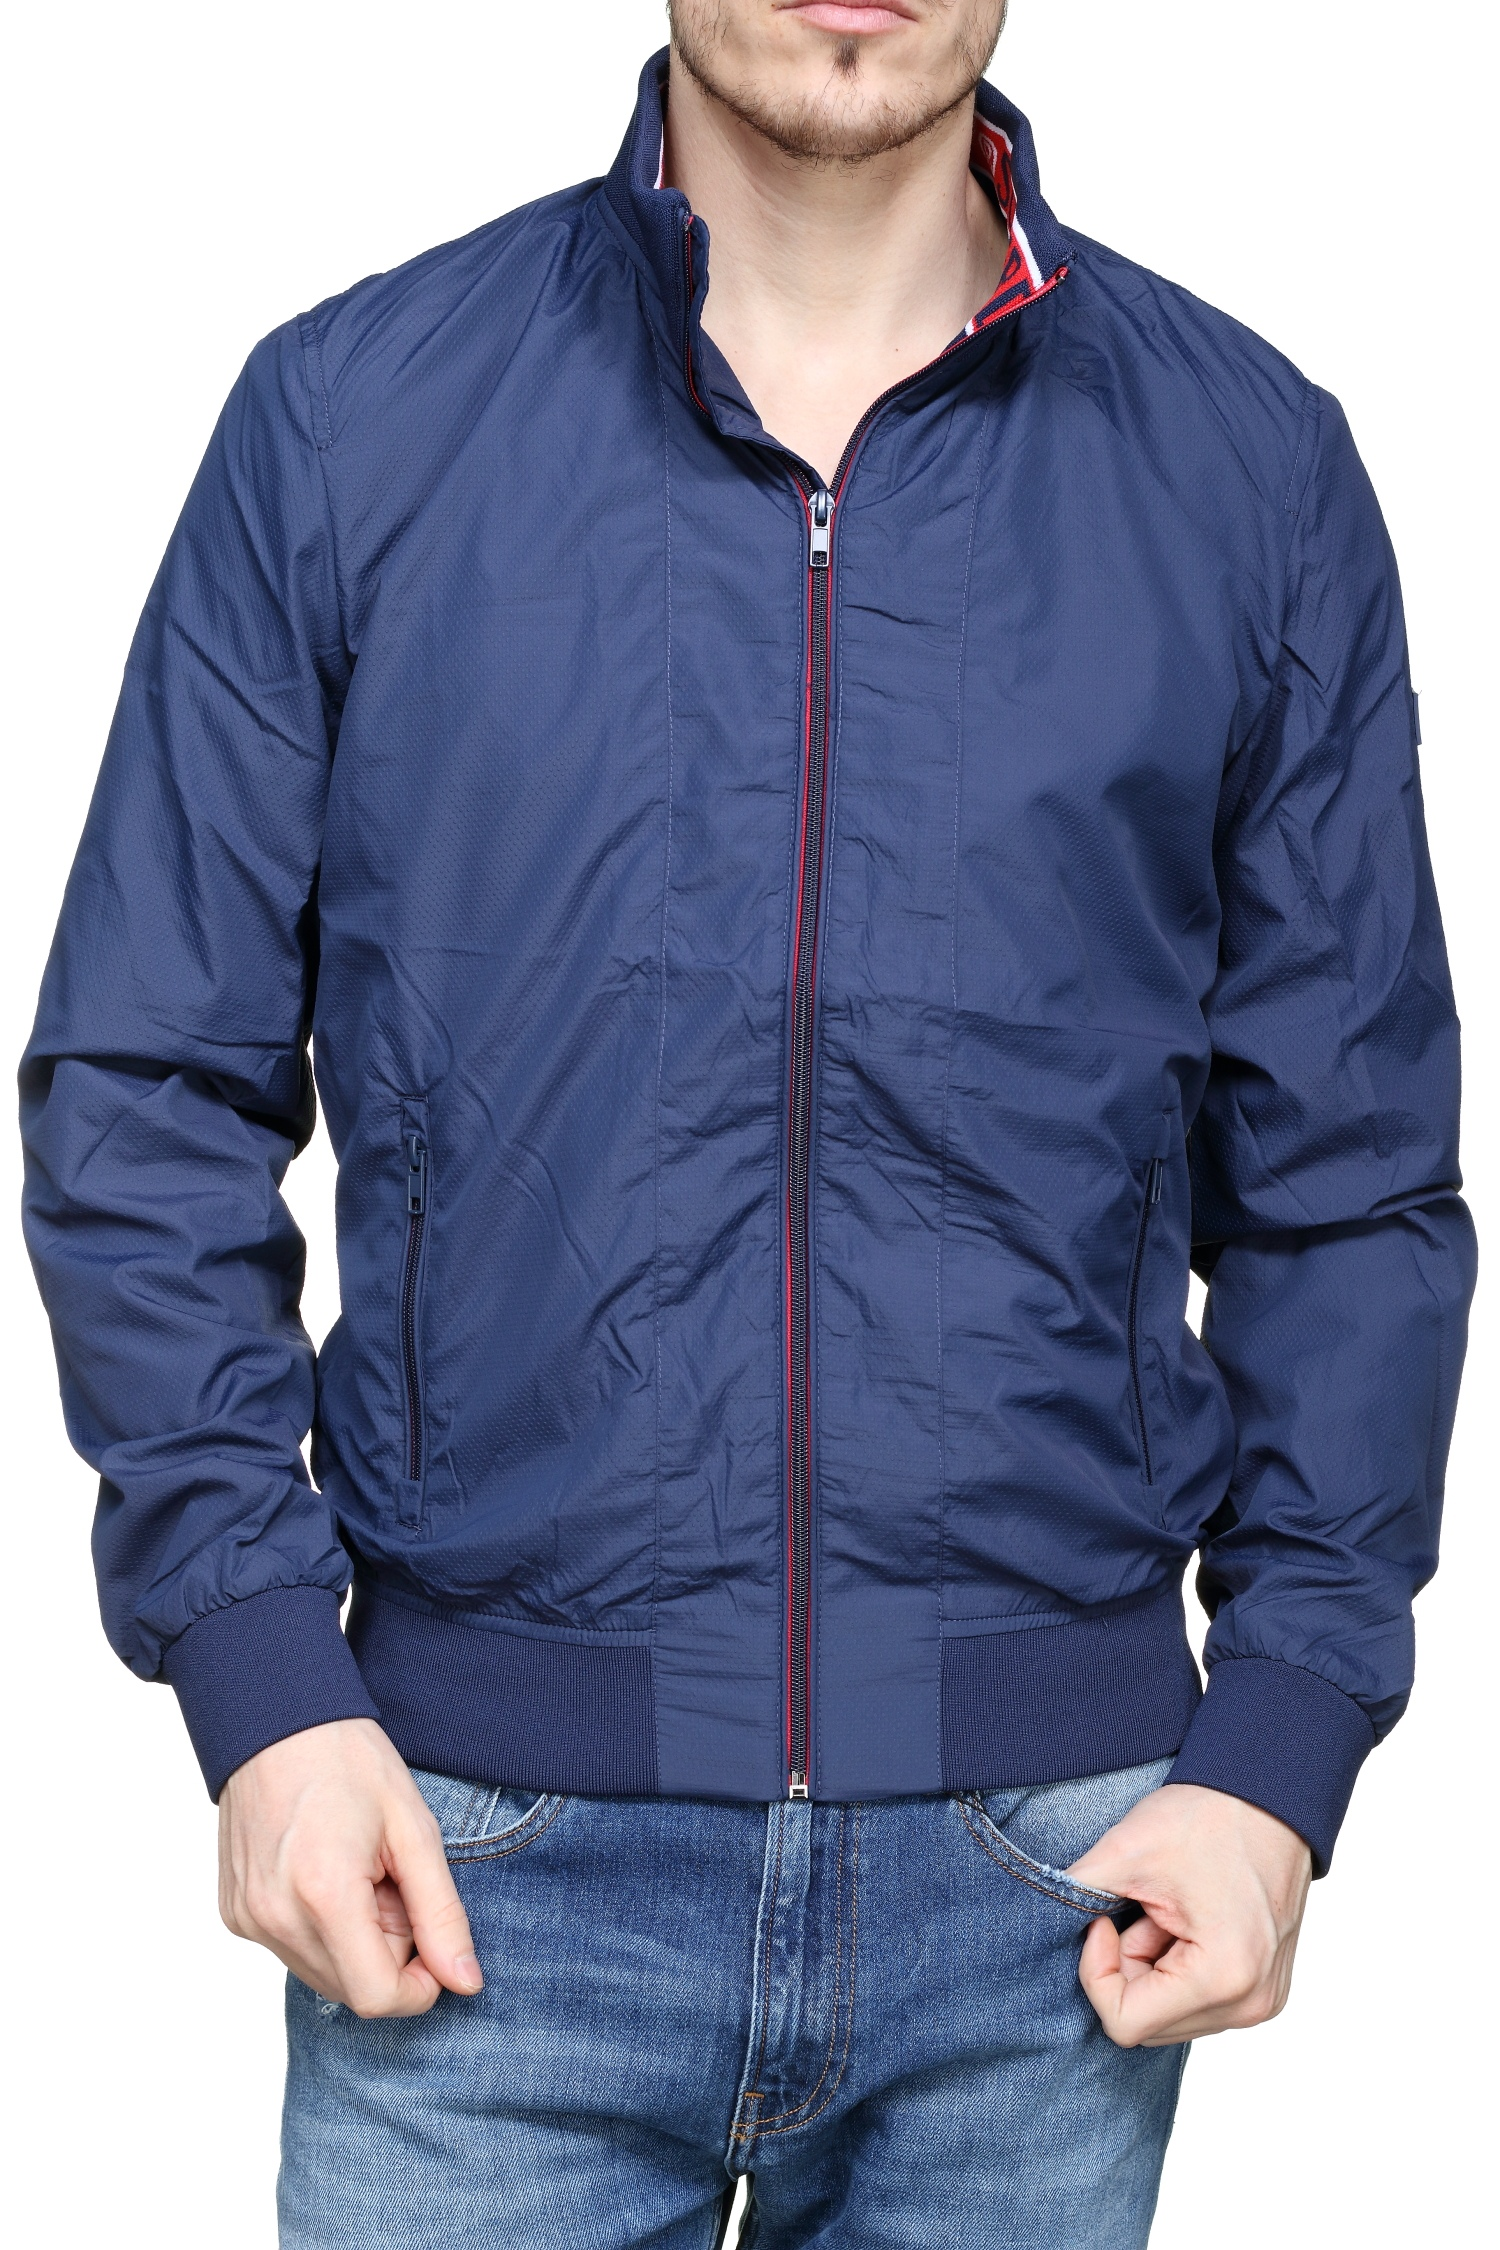 http://www.leadermode.com/163874/superdry-m50014st-flyweight-harrin-m99-true-navy.jpg